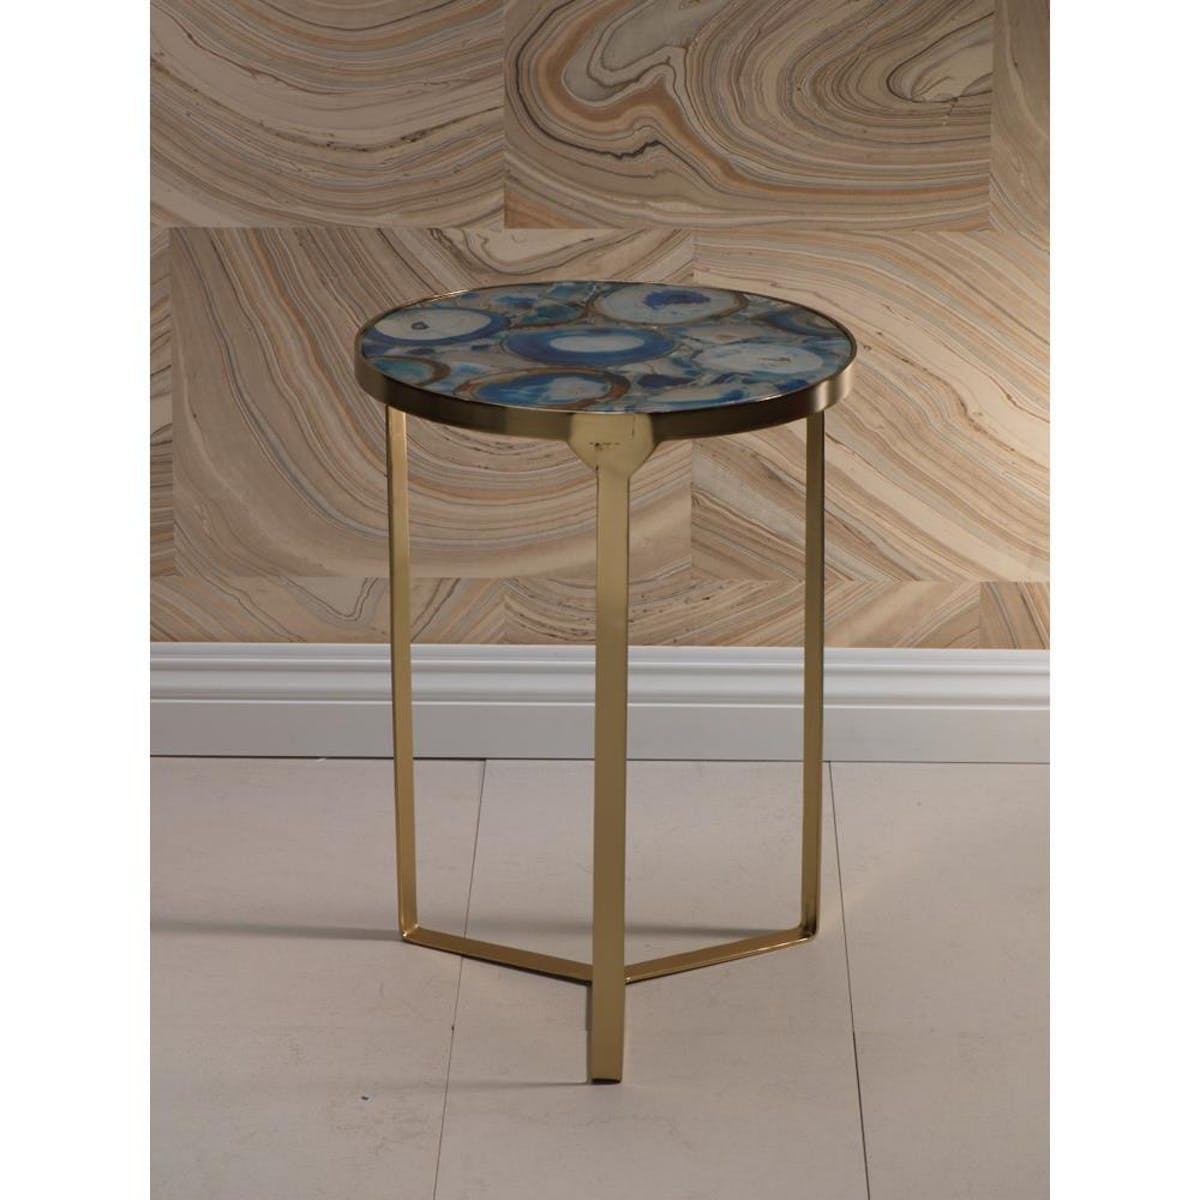 zodax inch high sardaigne blue agate end table modish glass accent desk combo basic coffee parsons silver bedside lamps nest tables with drawer tablecloth for round victorian side